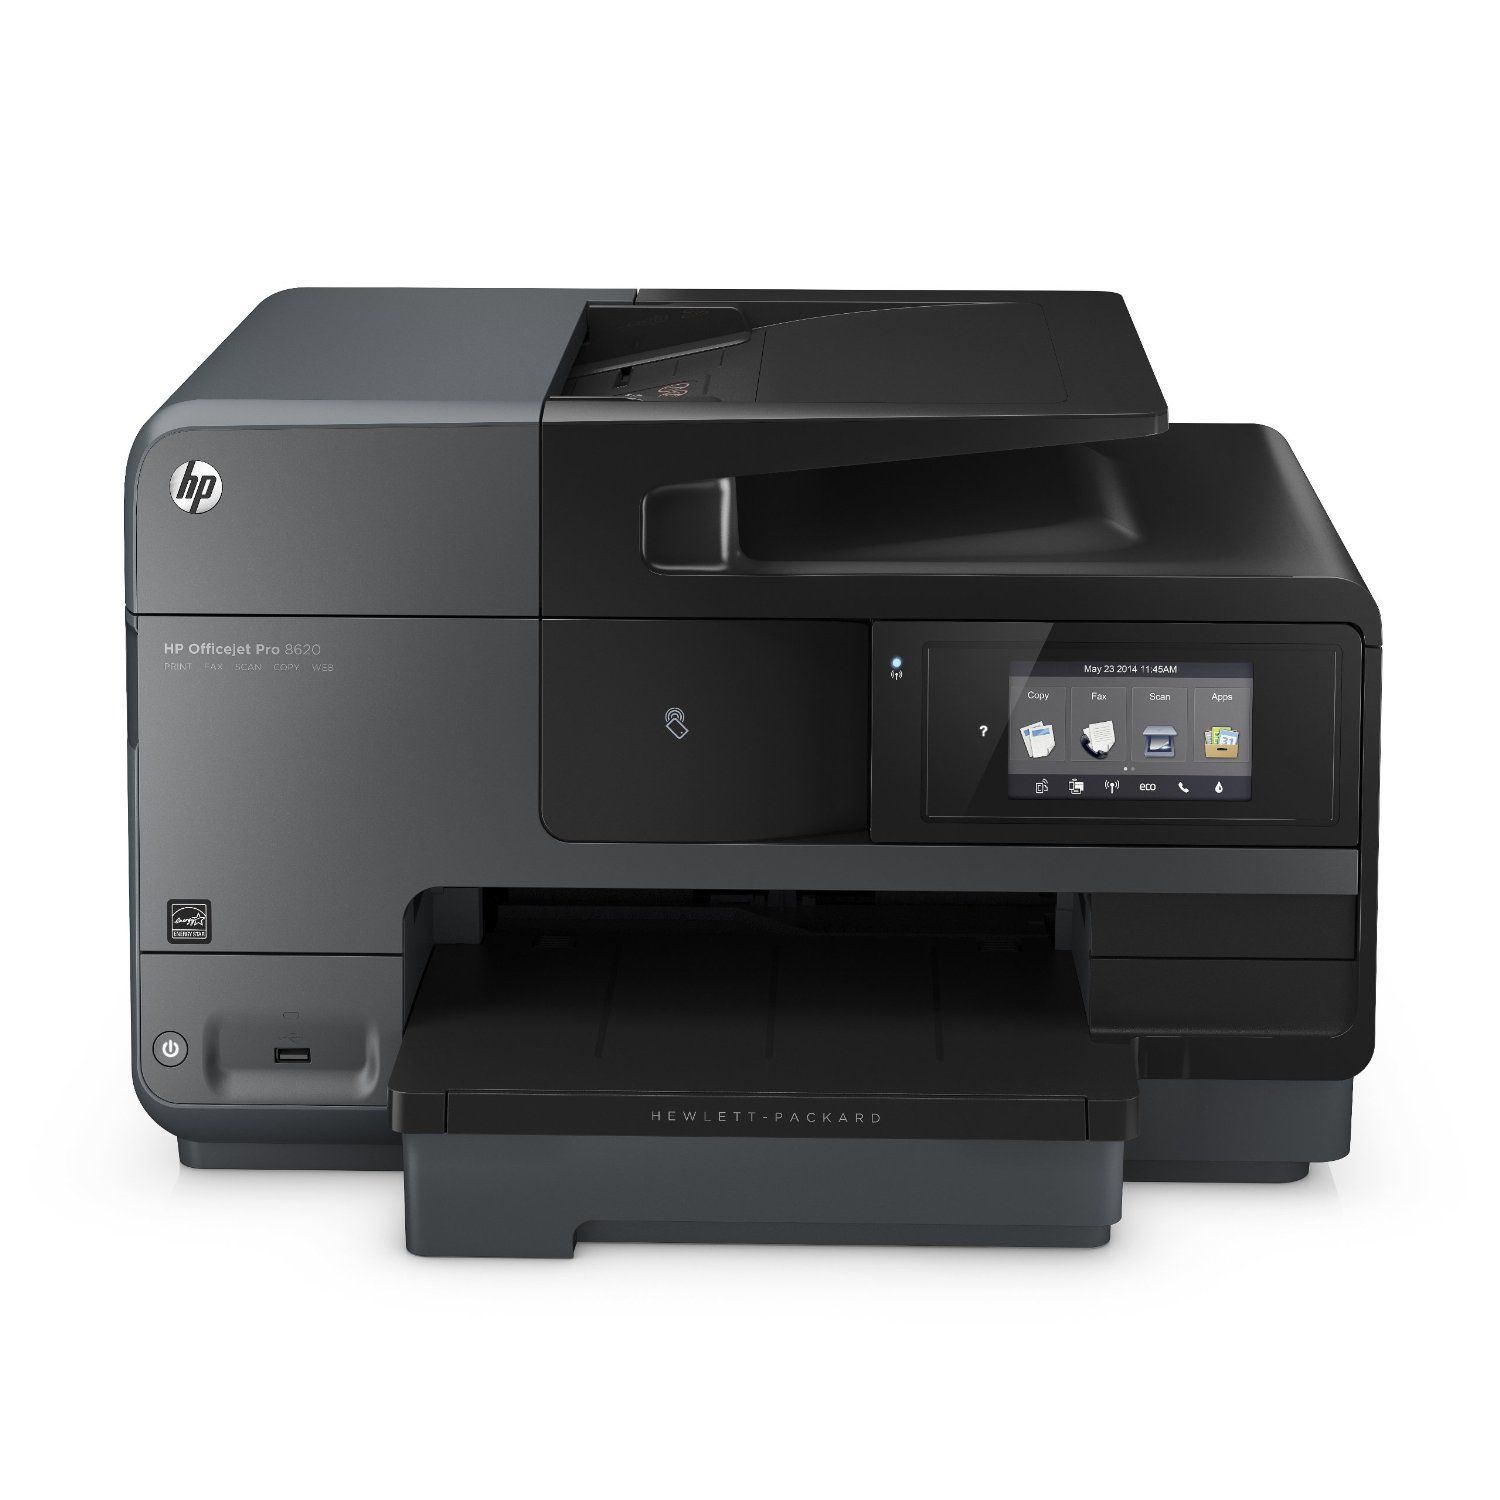 HP OfficeJet Pro 8620 Wireless All-in-One Color Inkjet Printer